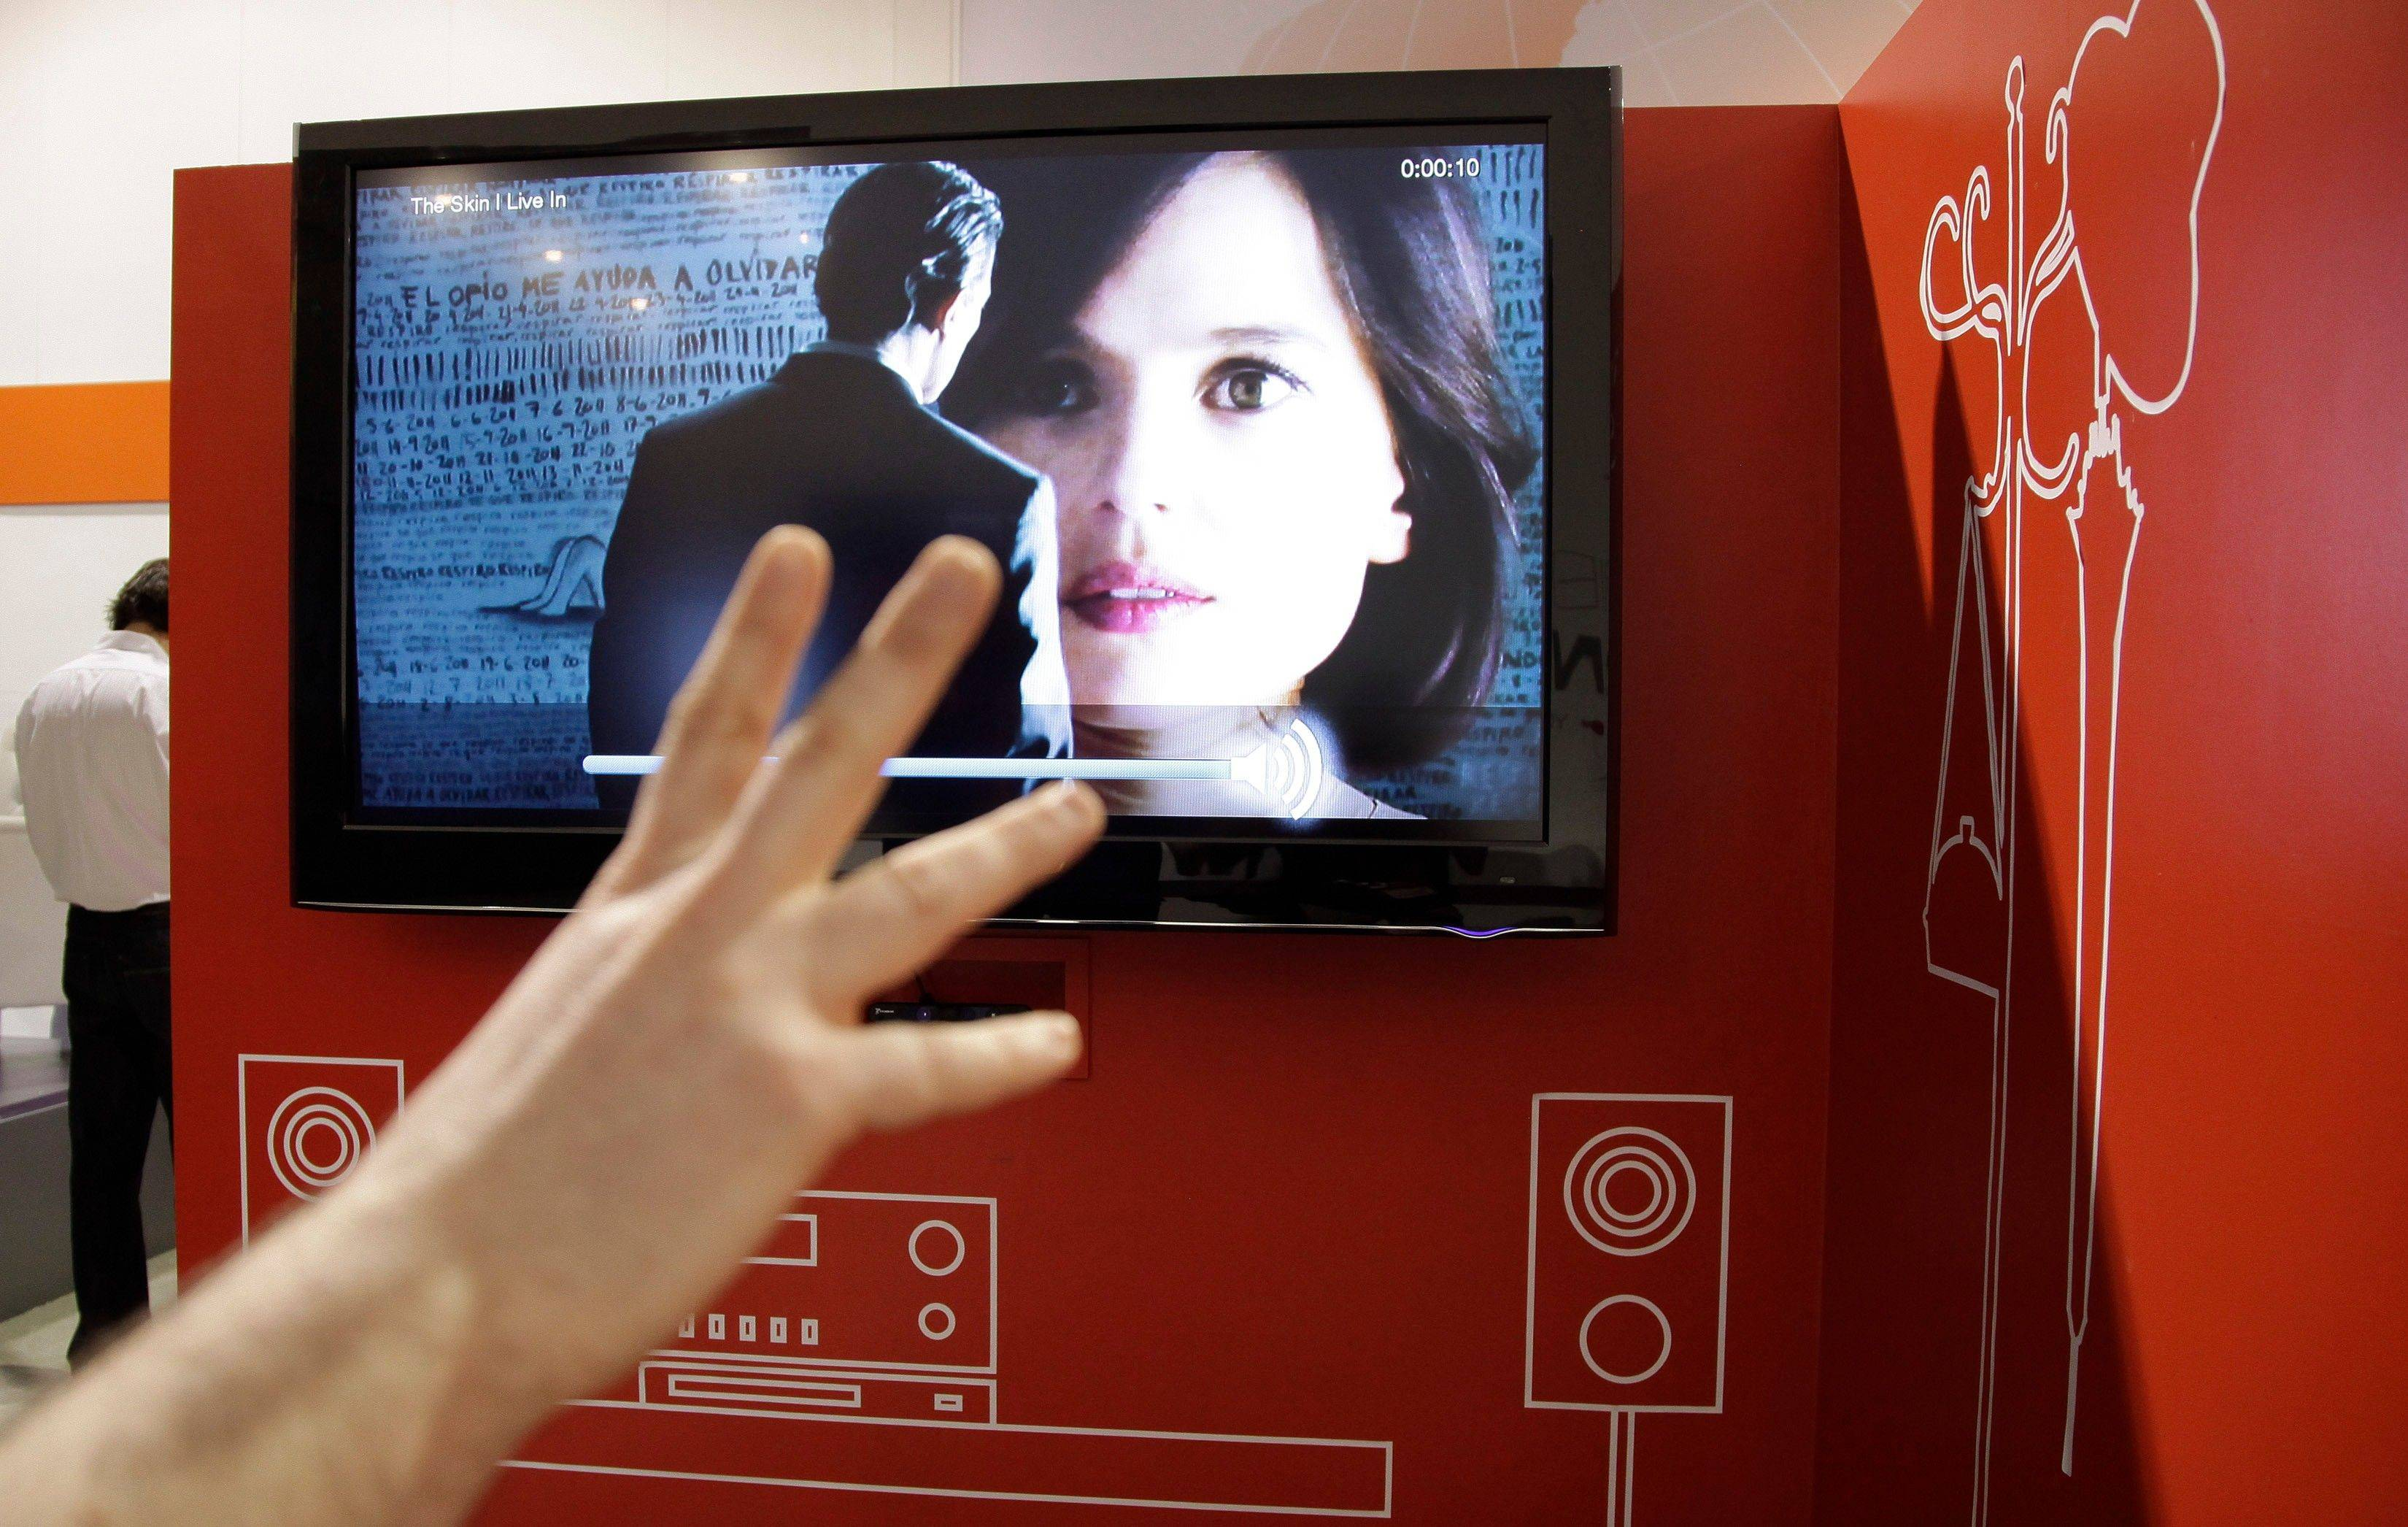 An industry affiliate tries out a Prime Sense depth control camera to change the volume on a television at the 2012 International Consumer Electronics Show in Las Vegas. The technology allows control of electronic devices with body motion.